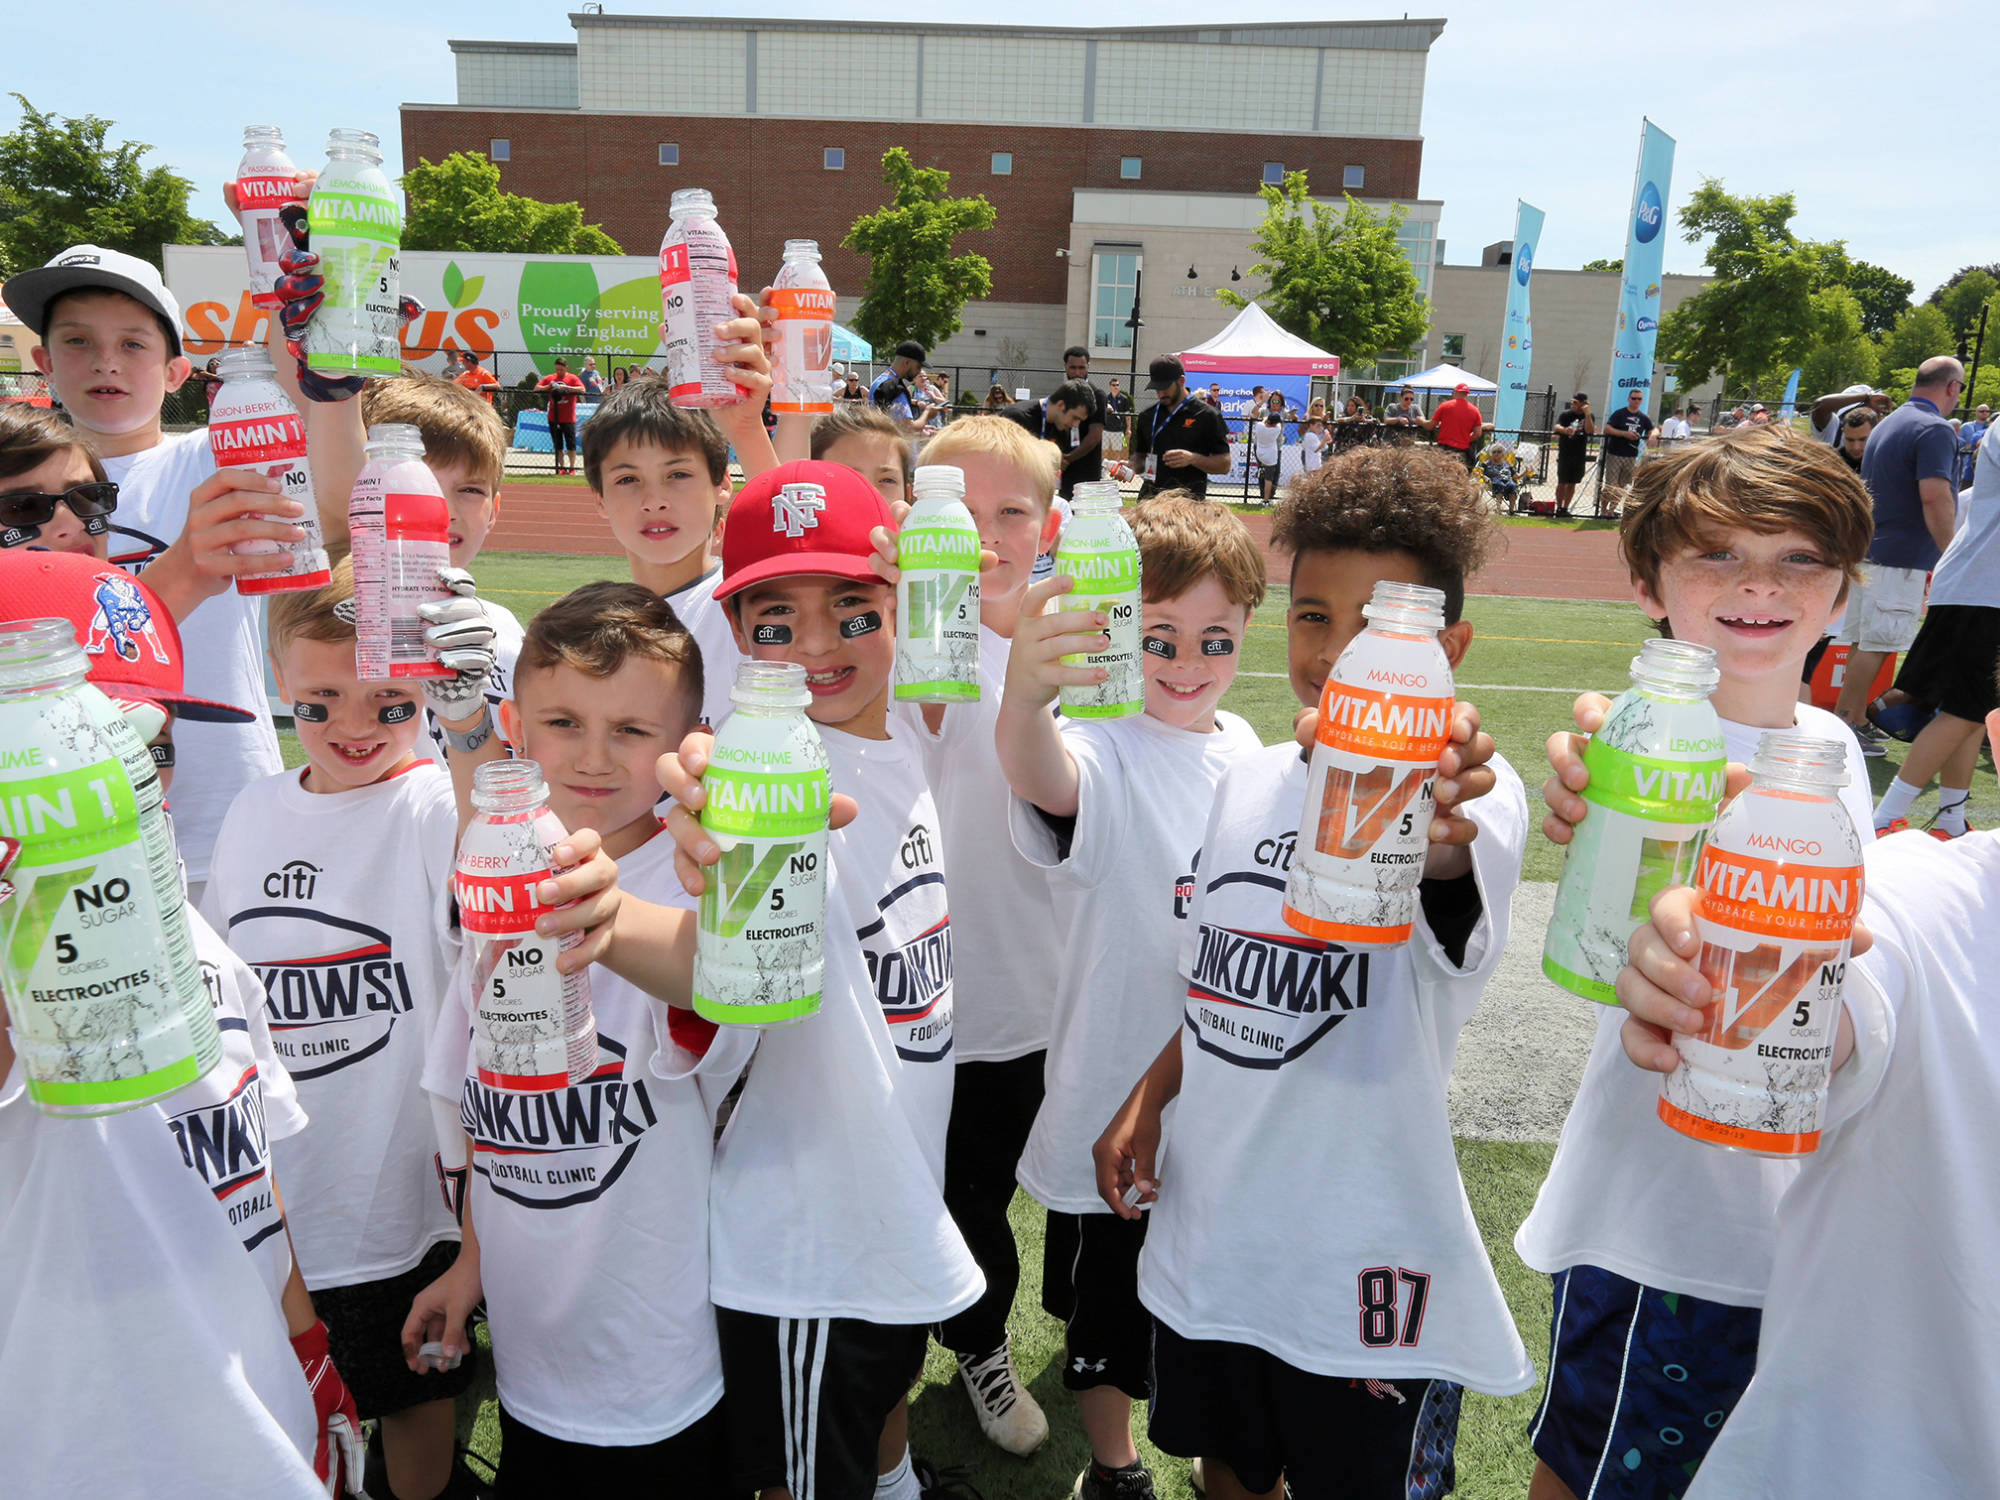 Vitamin 1 sponsor of Gronkowski Football Clinic 20